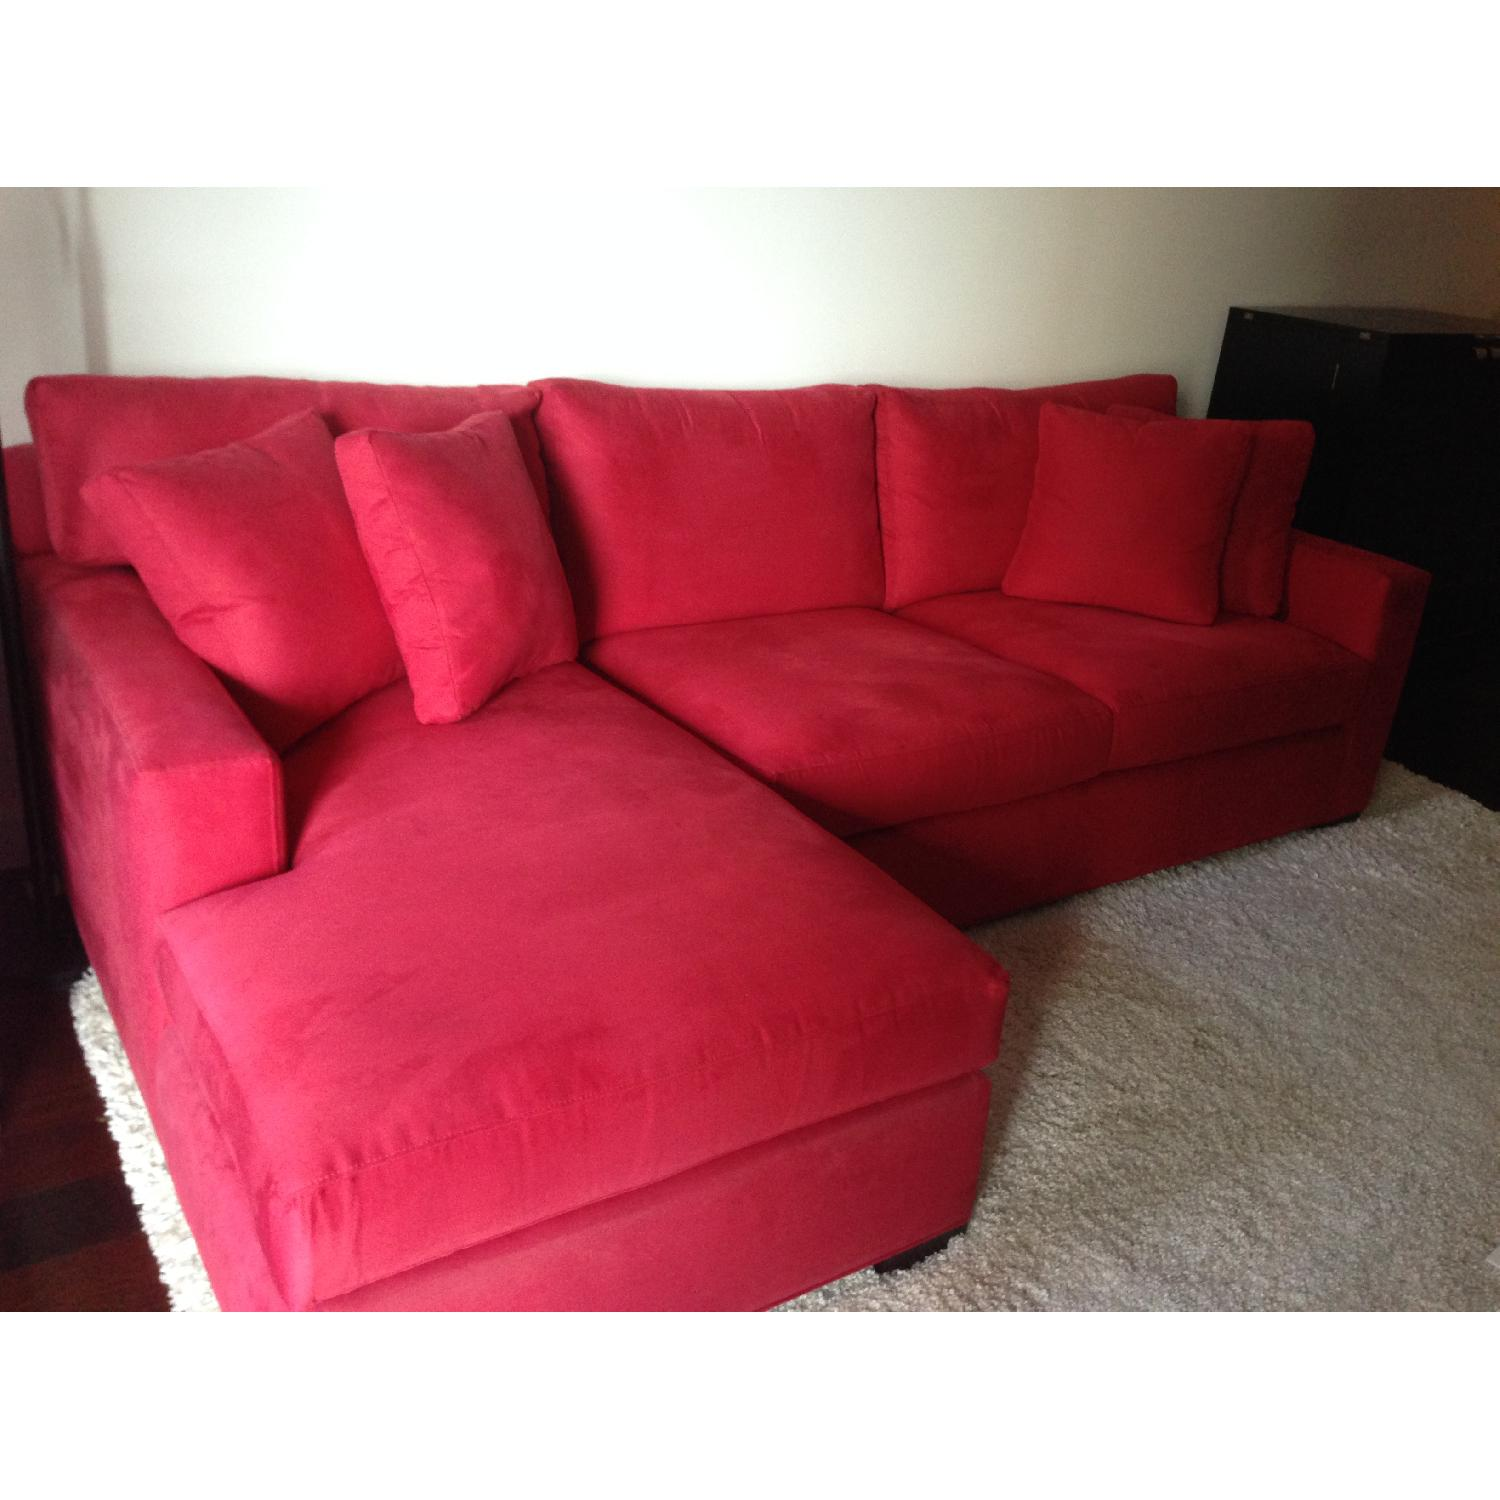 Crate & Barrel Red 2-Piece Sectional Sofa - image-2